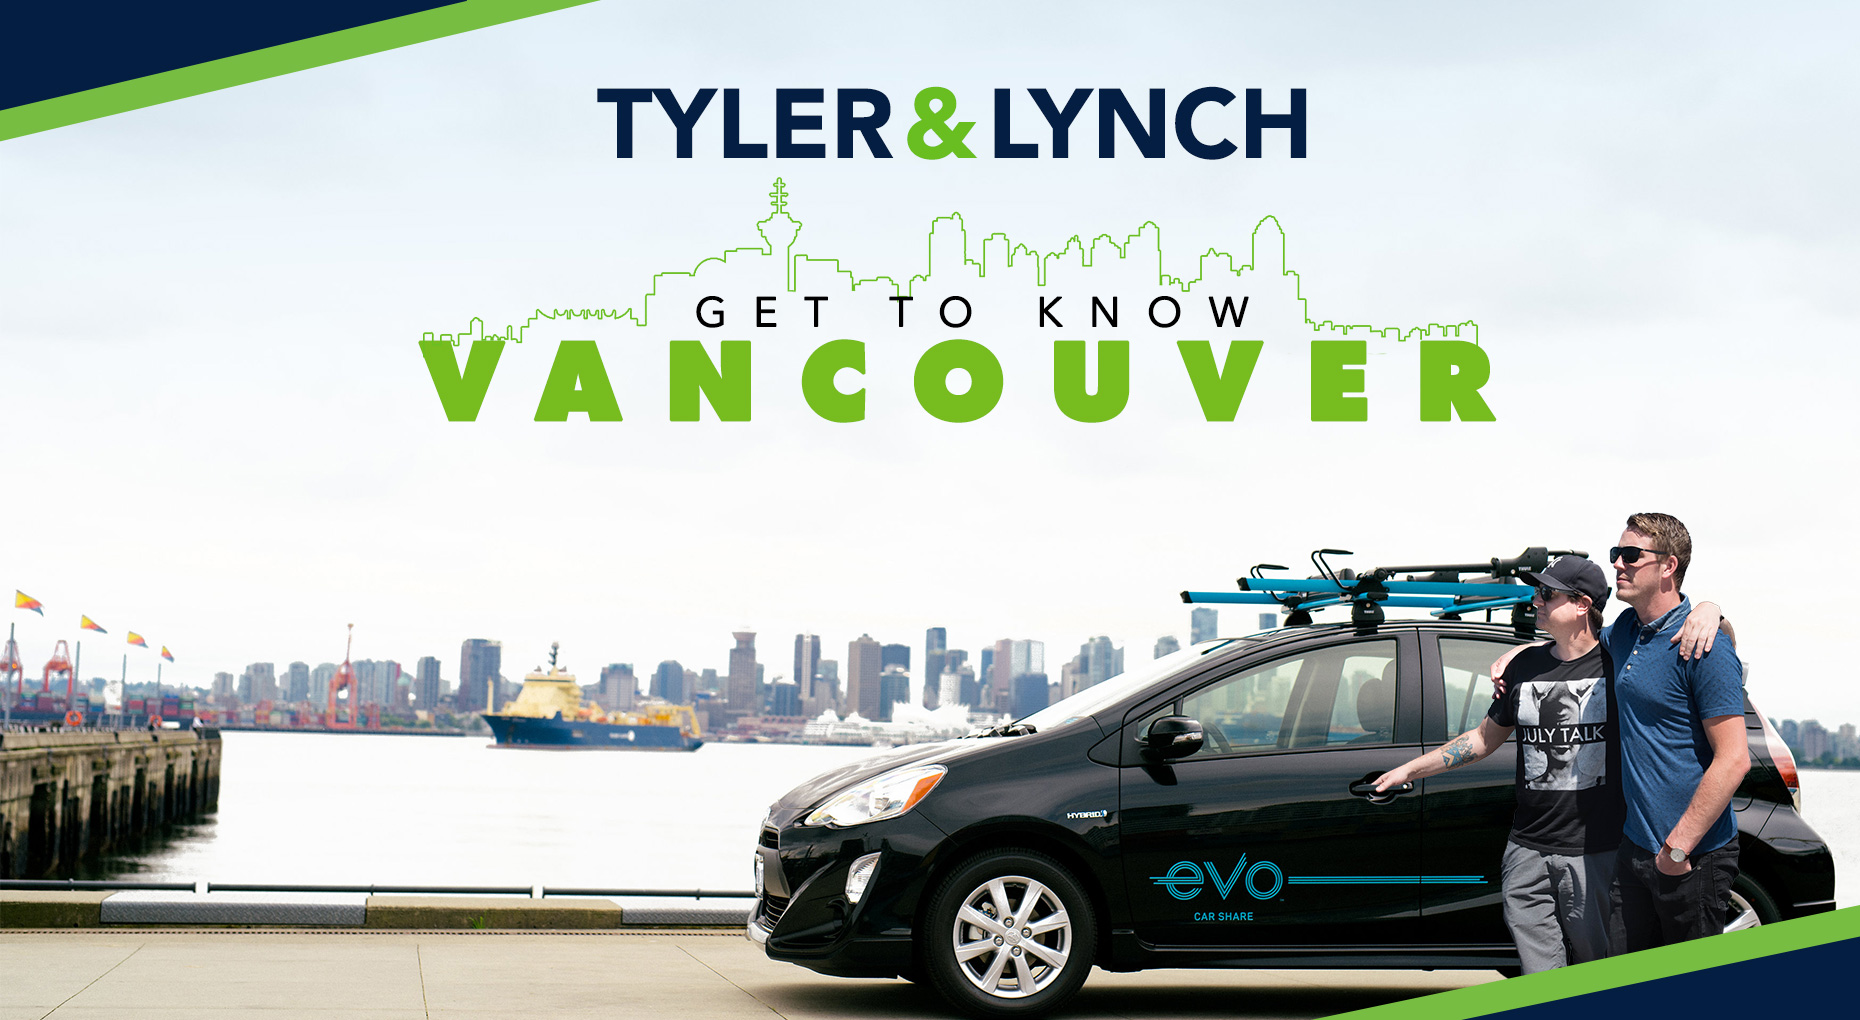 Tyler & Lynch Get To Know Vancouver